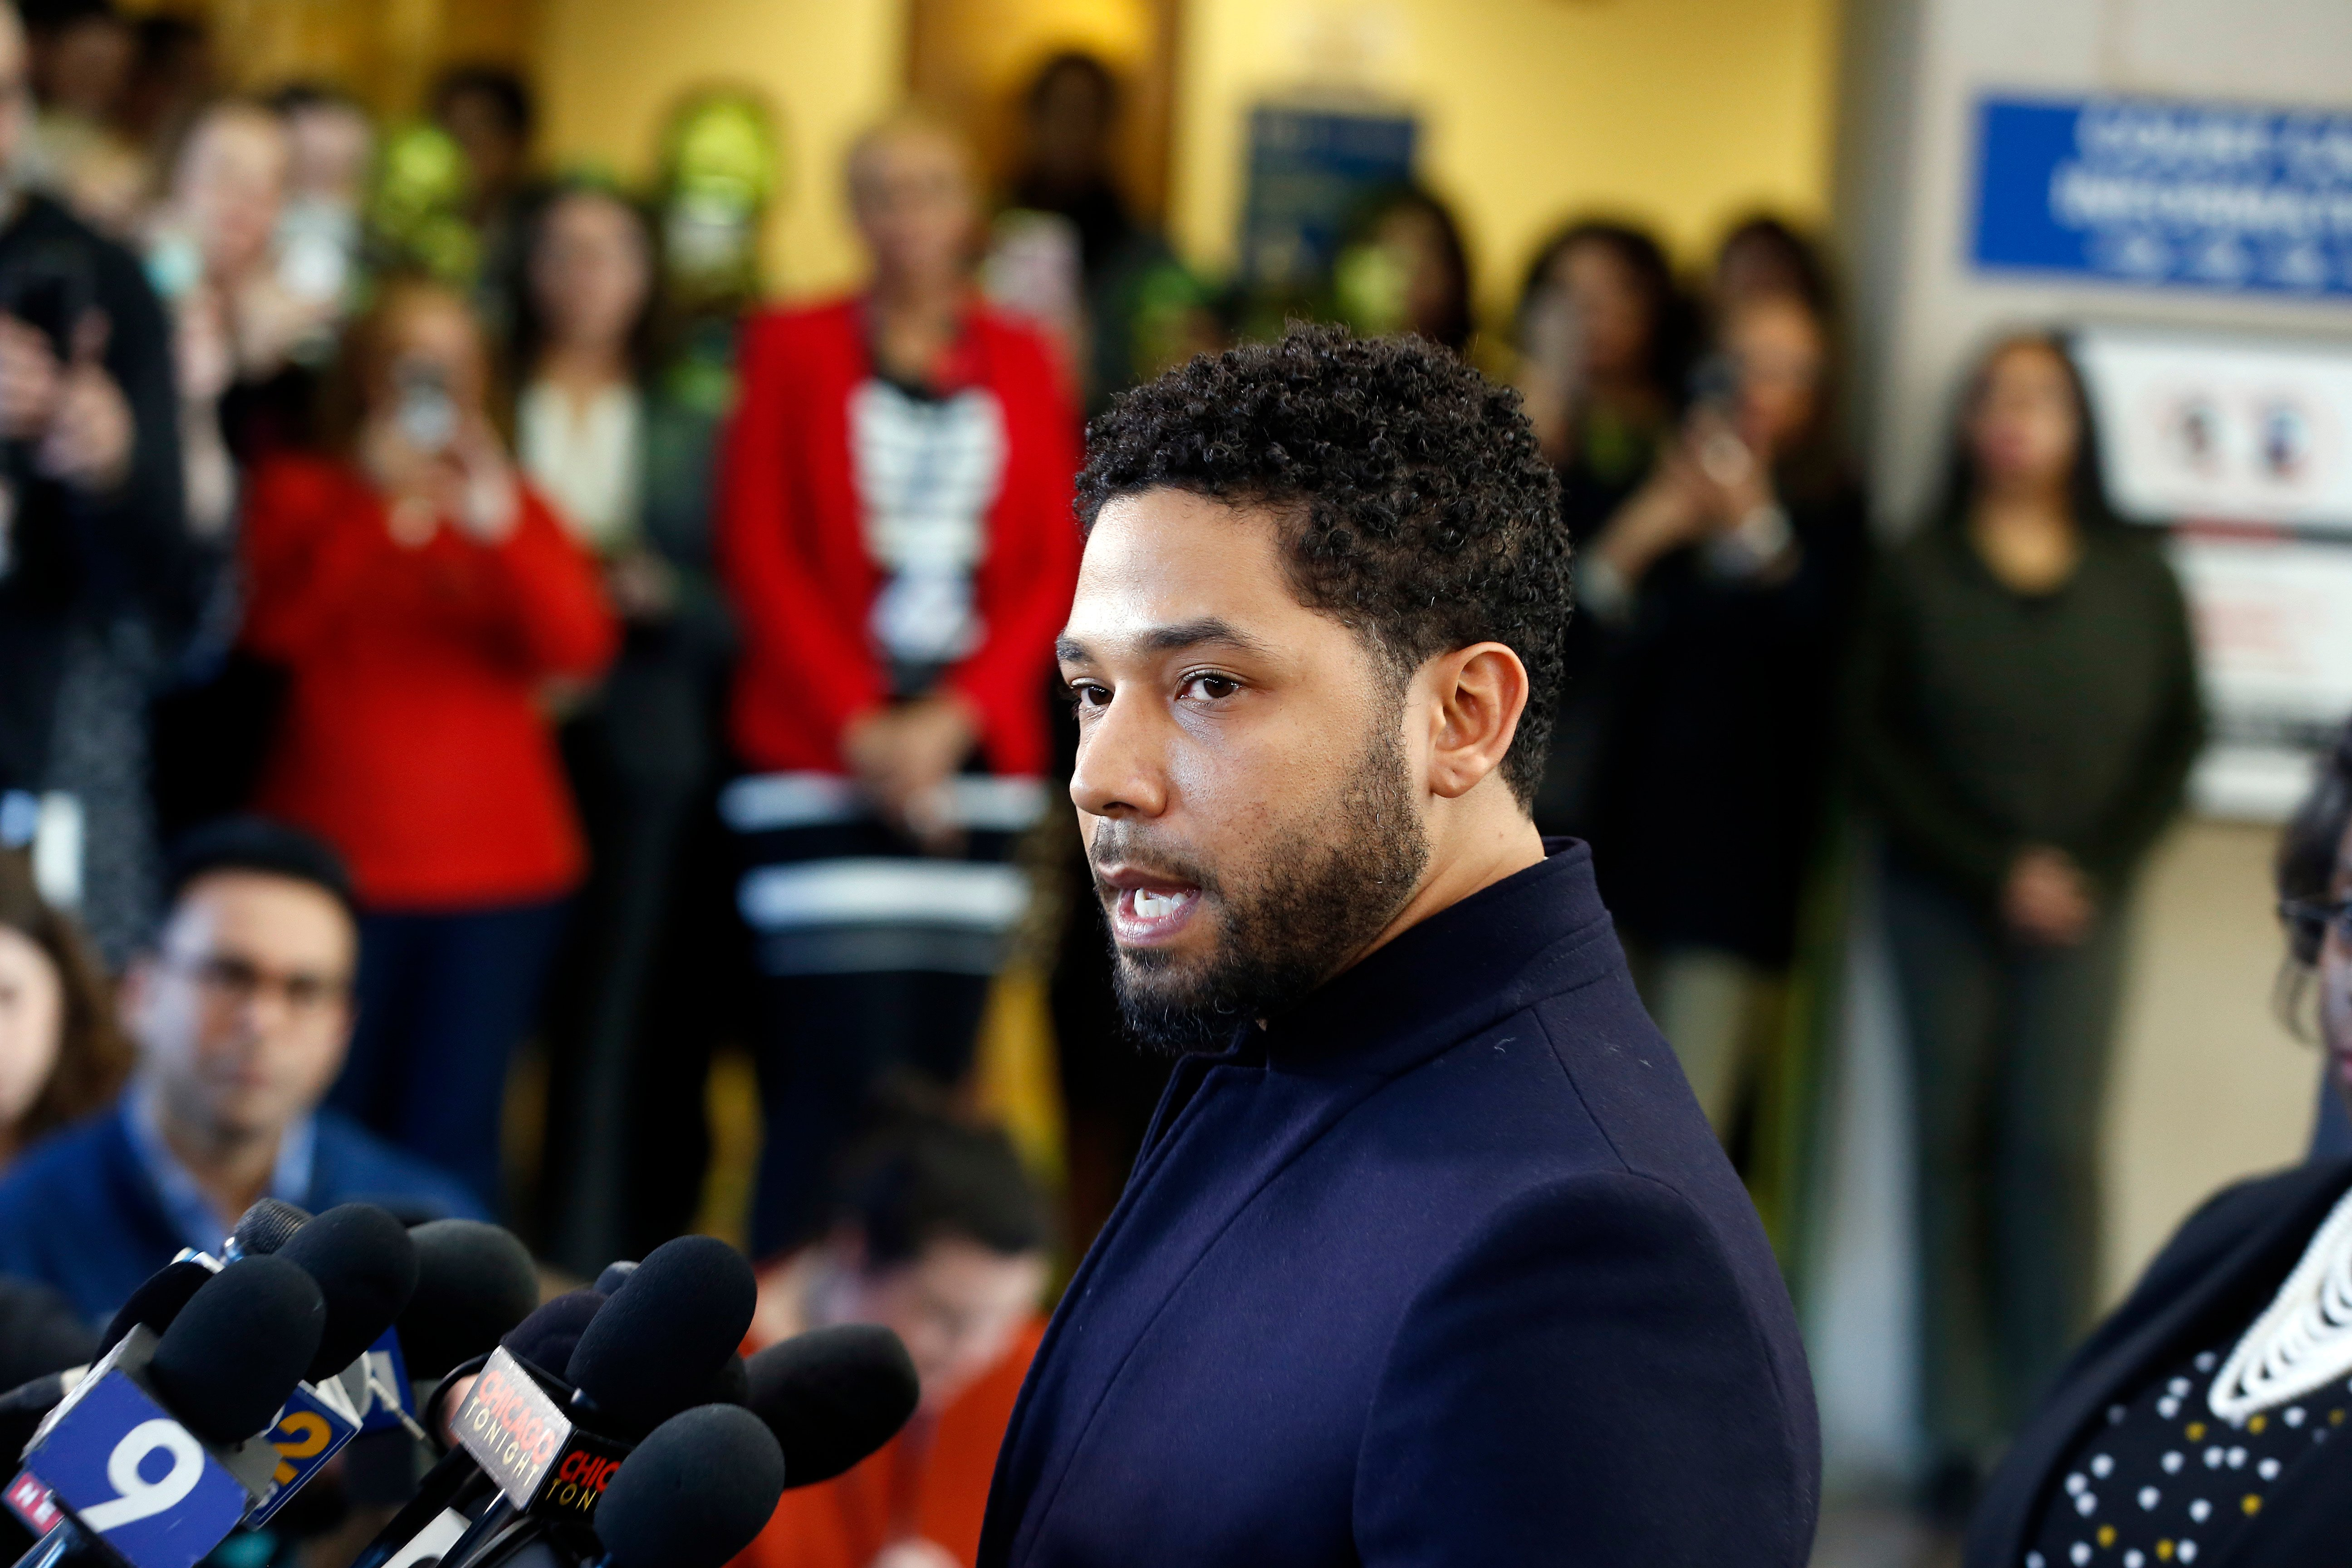 Actor Jussie Smollett speaks with members of the media after his court appearance at Leighton Courthouse on March 26, 2019 in Chicago, Illinois. This morning in court it was announced that all charges were dropped against the actor. (Photo by Nuccio DiNuzzo/Getty Images)